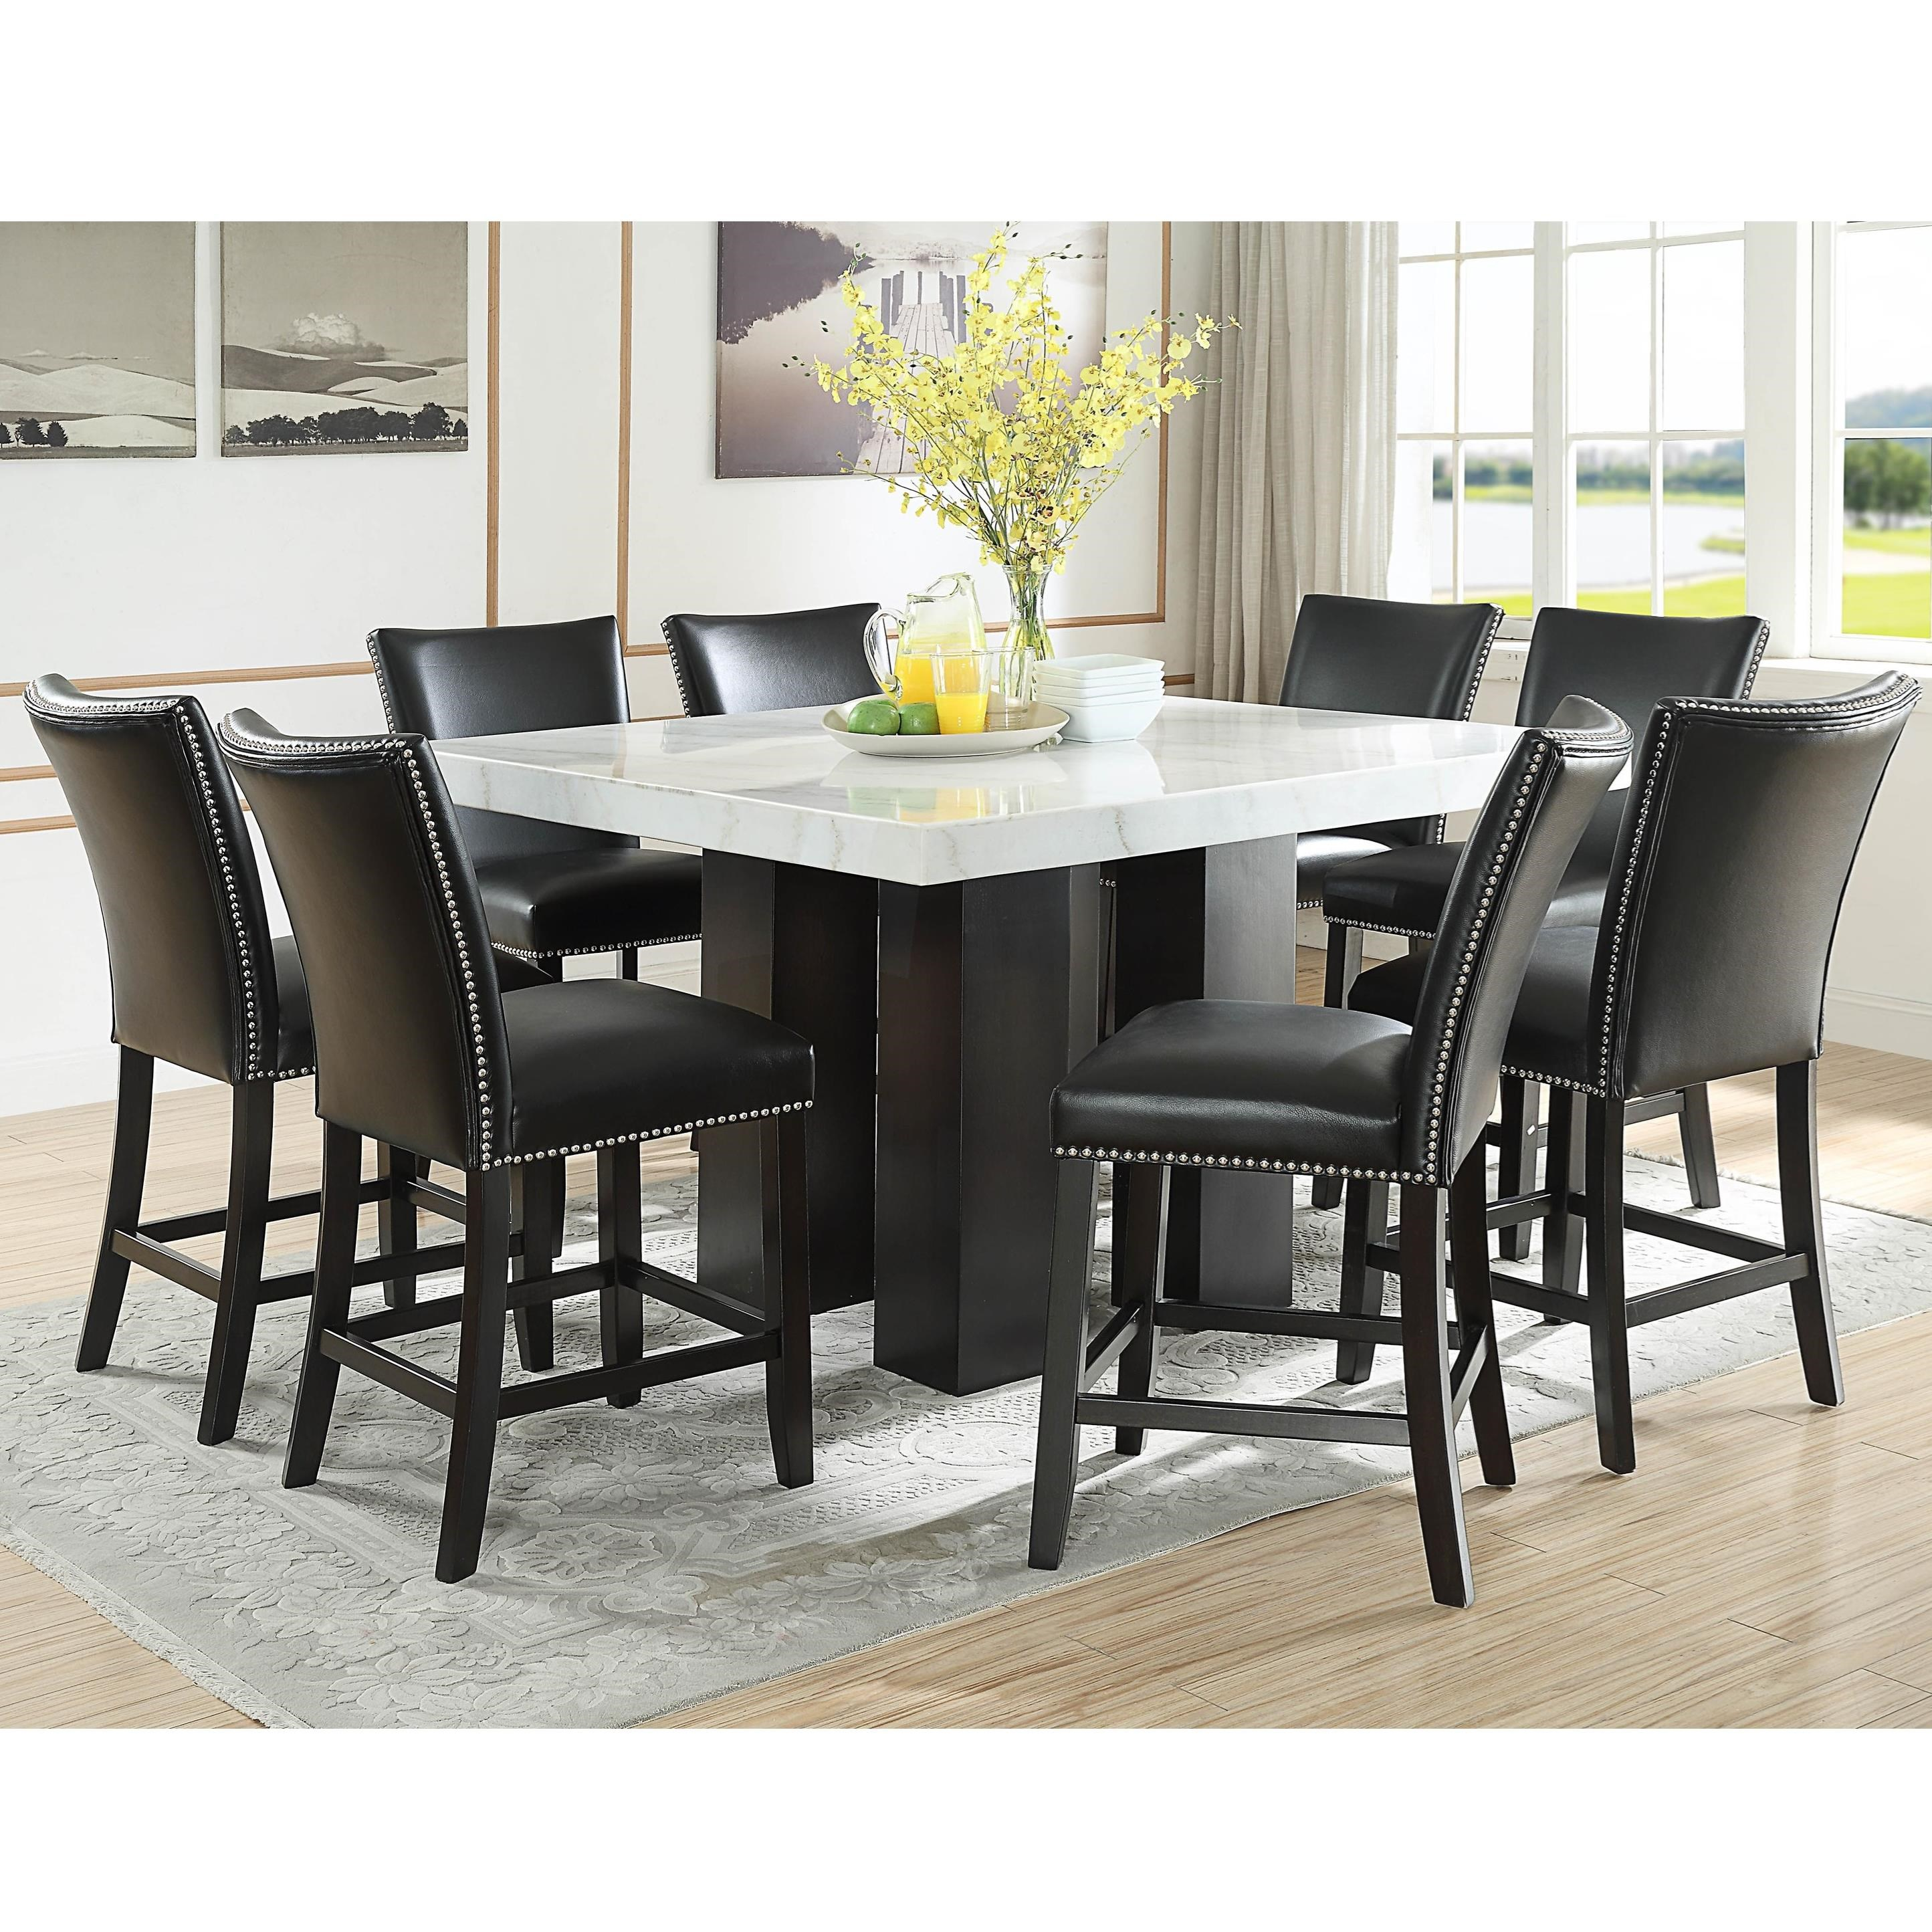 Star Camila 9 Piece Counter Height Dining Set with Marble ...